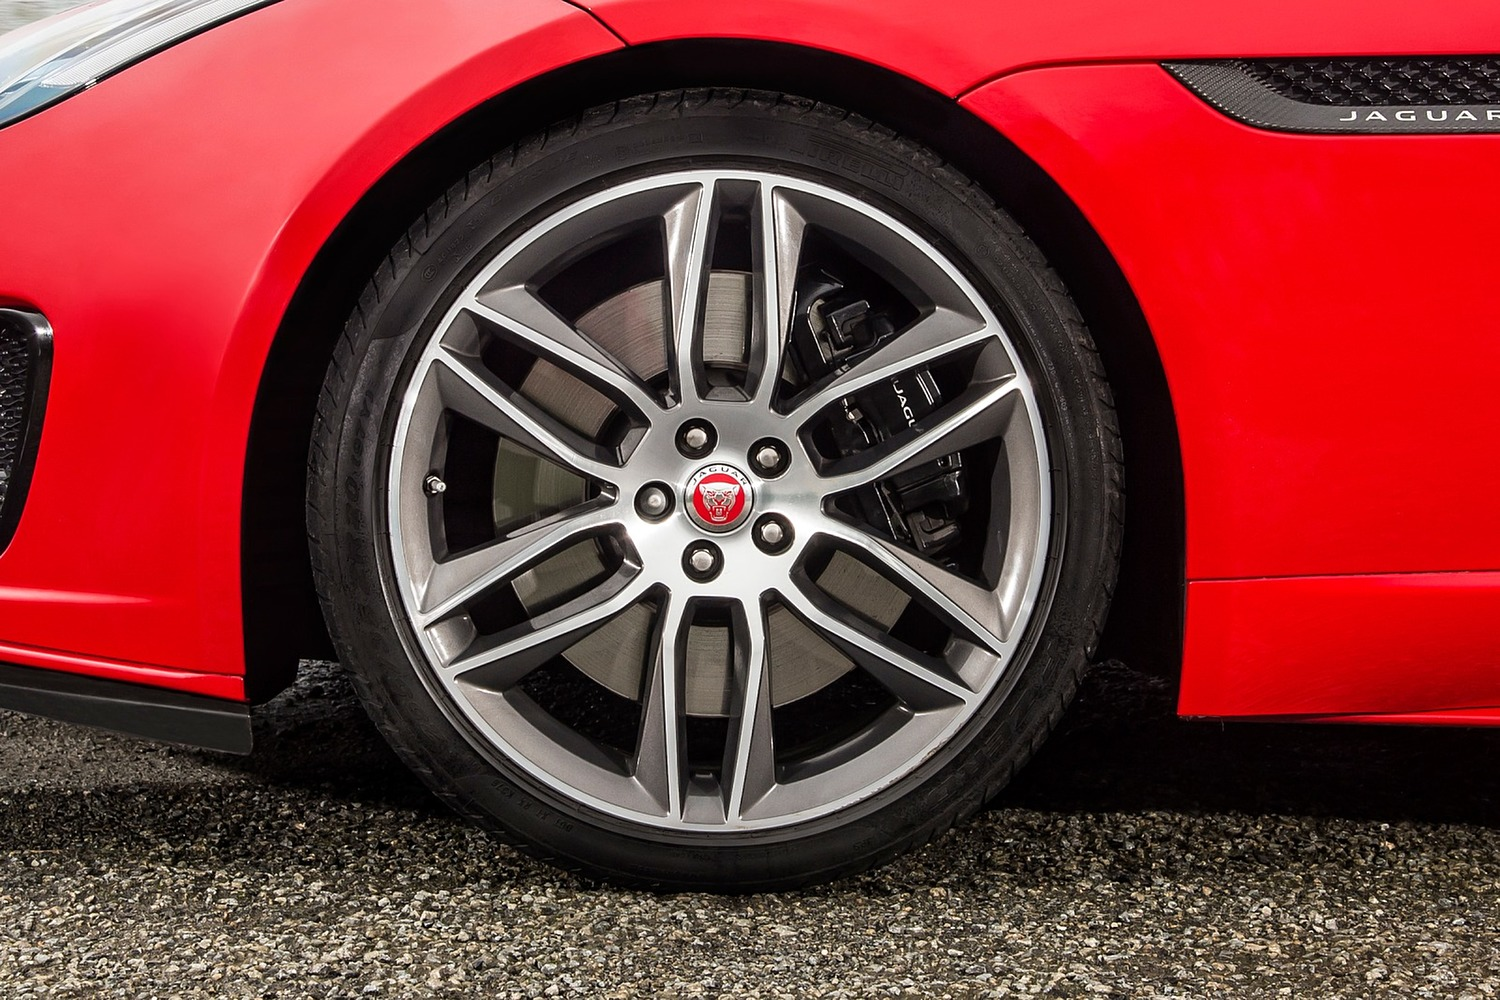 2018 Jaguar F-TYPE Coupe Wheel